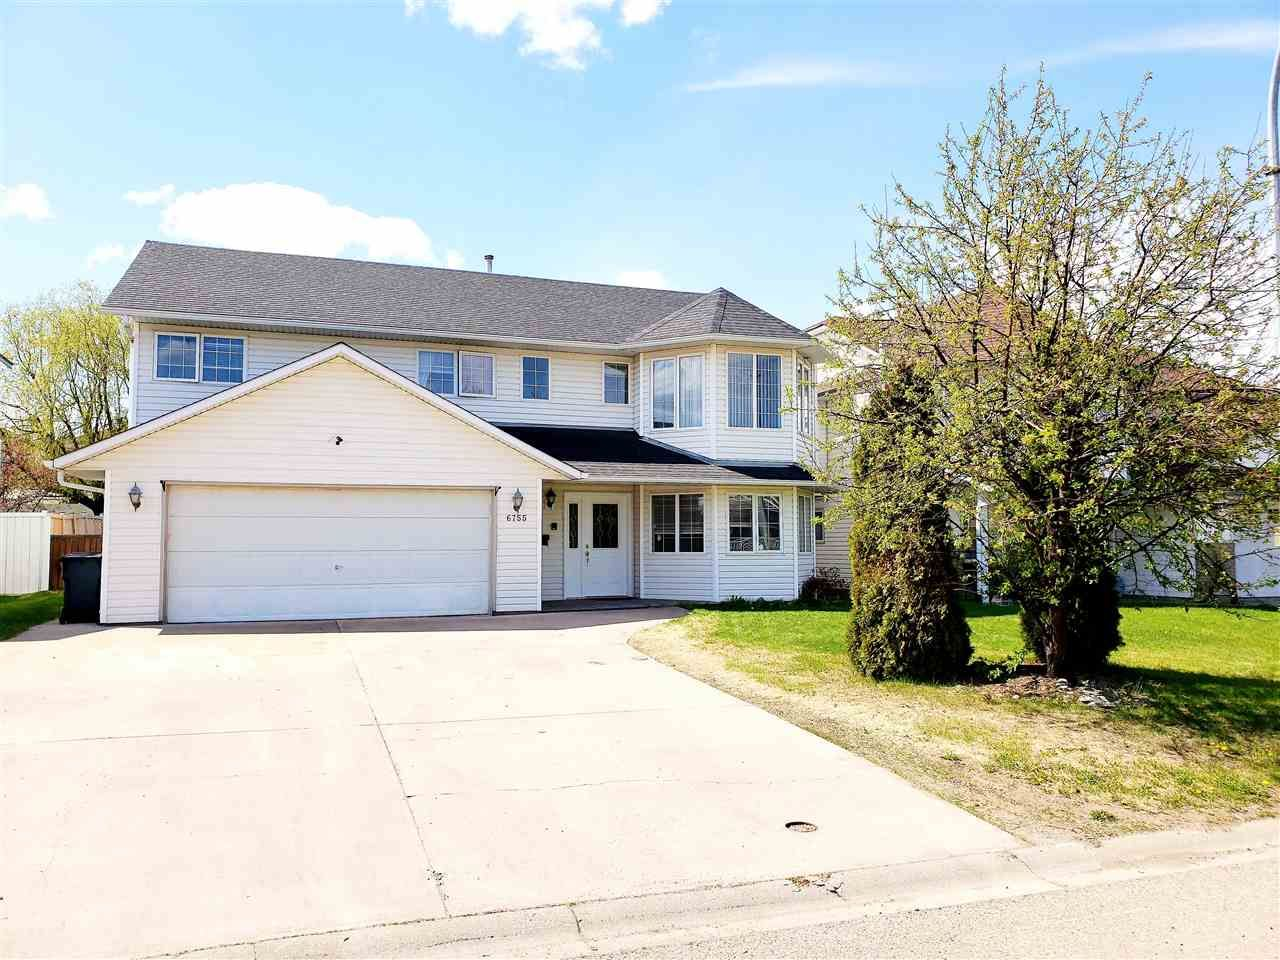 Main Photo: 6755 O'GRADY Road in Prince George: St. Lawrence Heights House for sale (PG City South (Zone 74))  : MLS®# R2456297